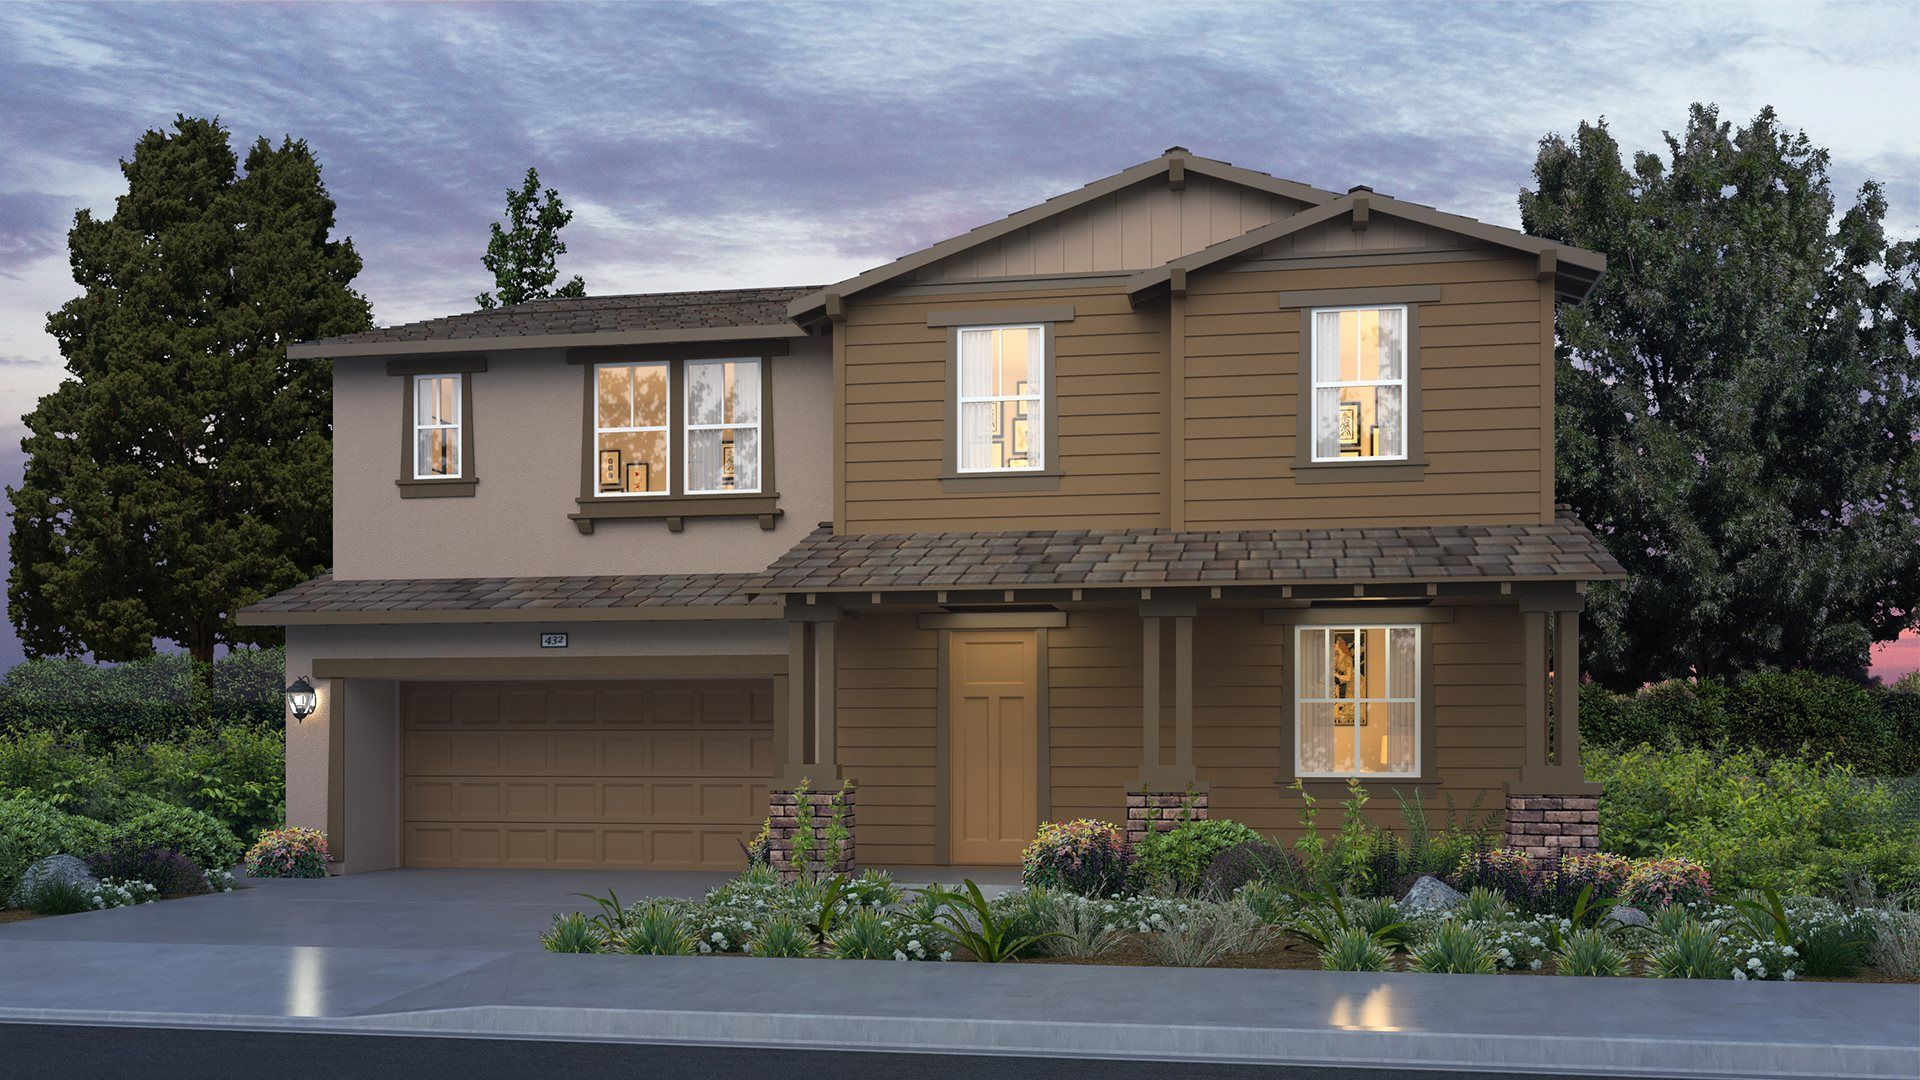 Everly at Parklane - Residence One B Exterior